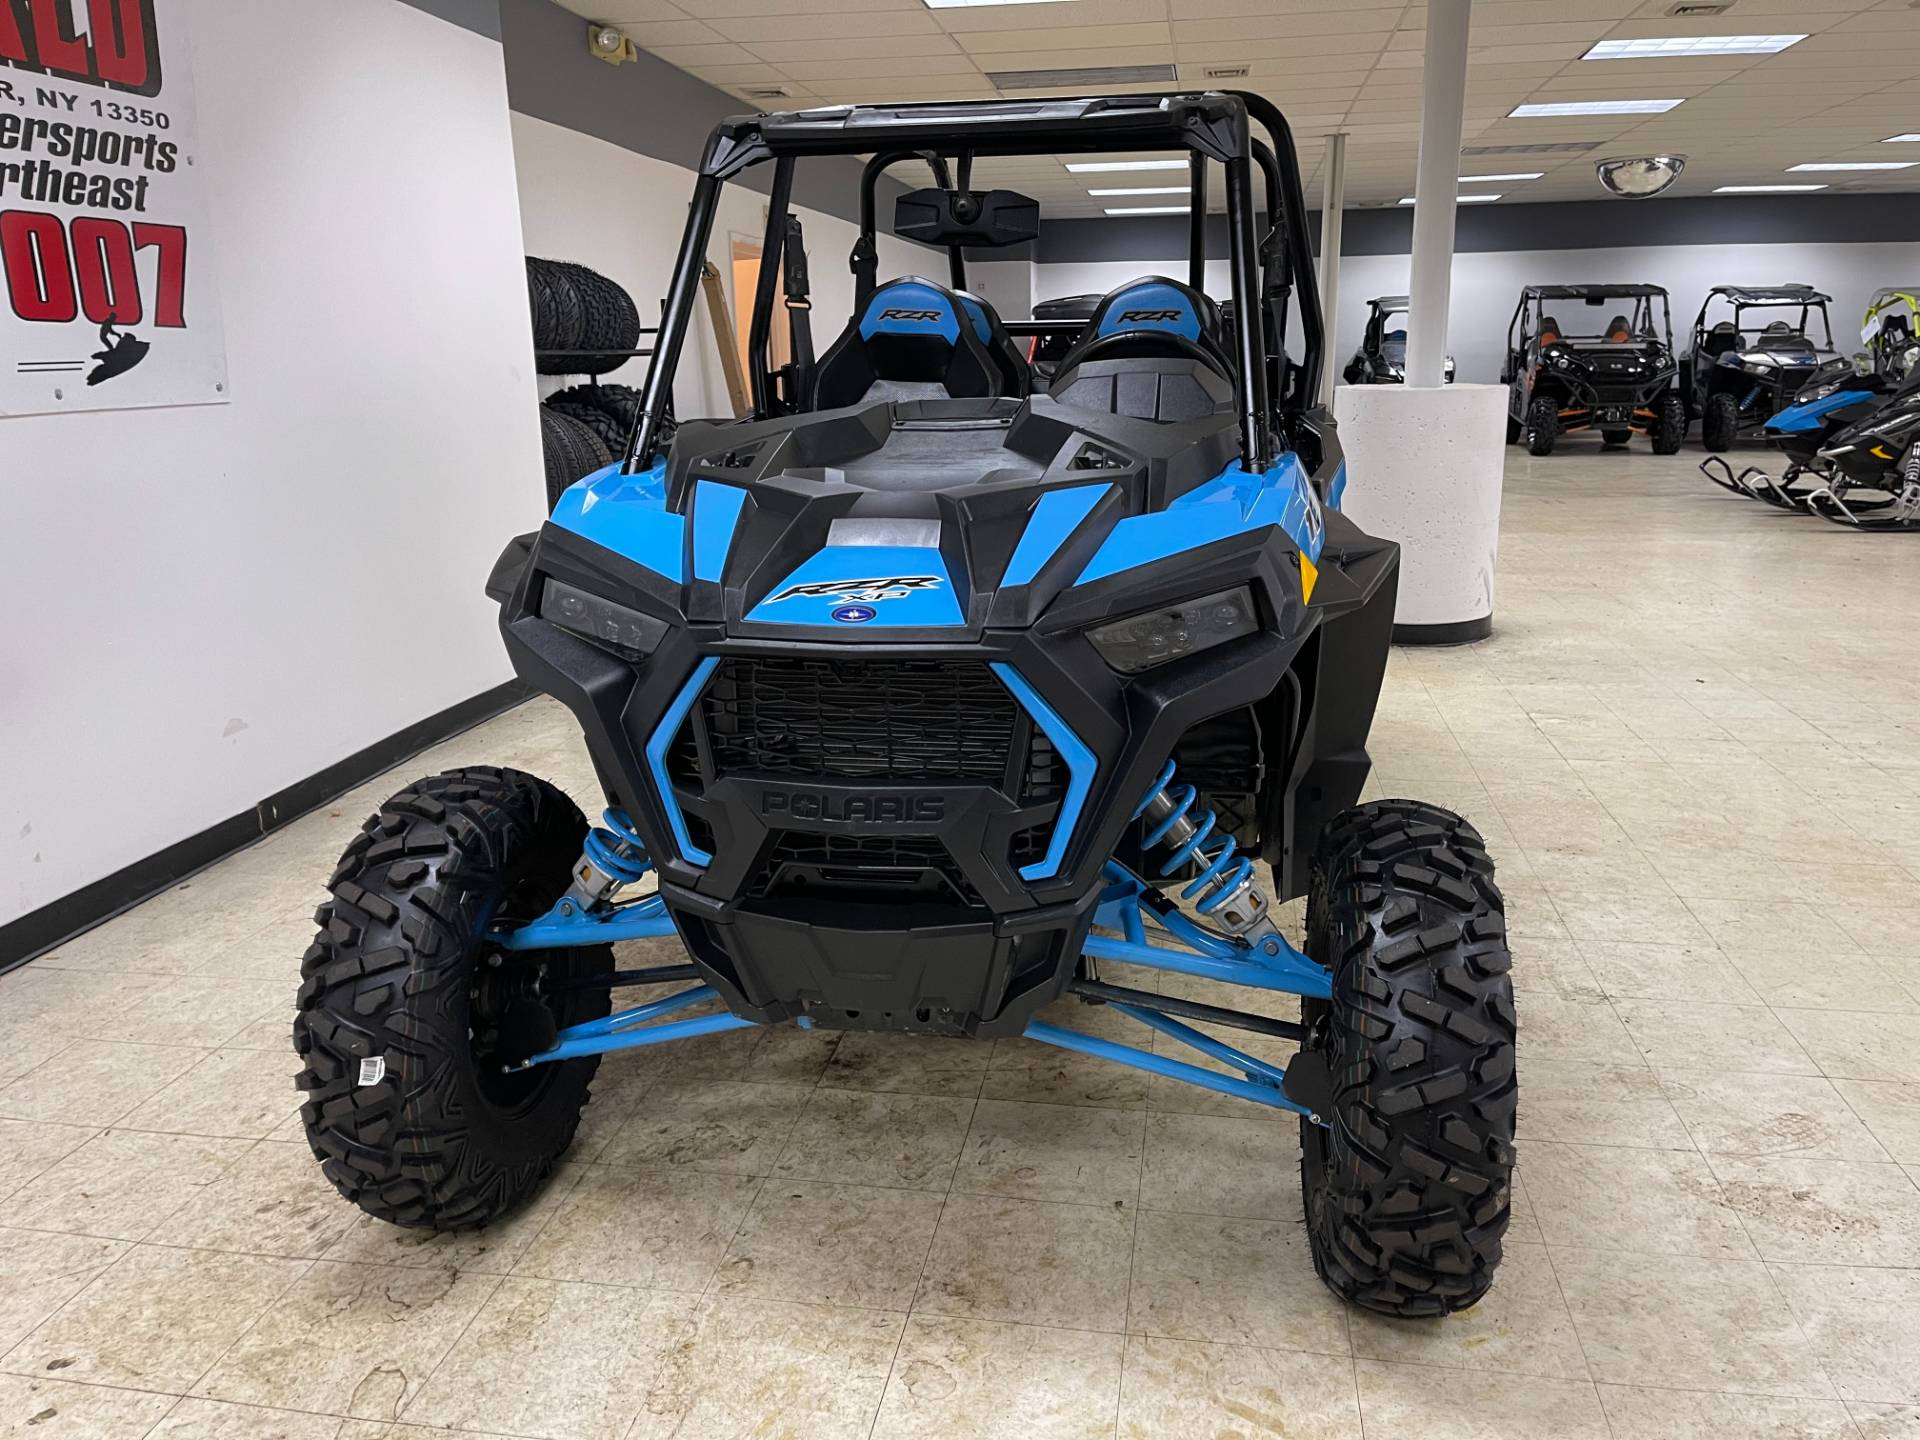 2020 Polaris RZR XP 4 1000 in Herkimer, New York - Photo 7